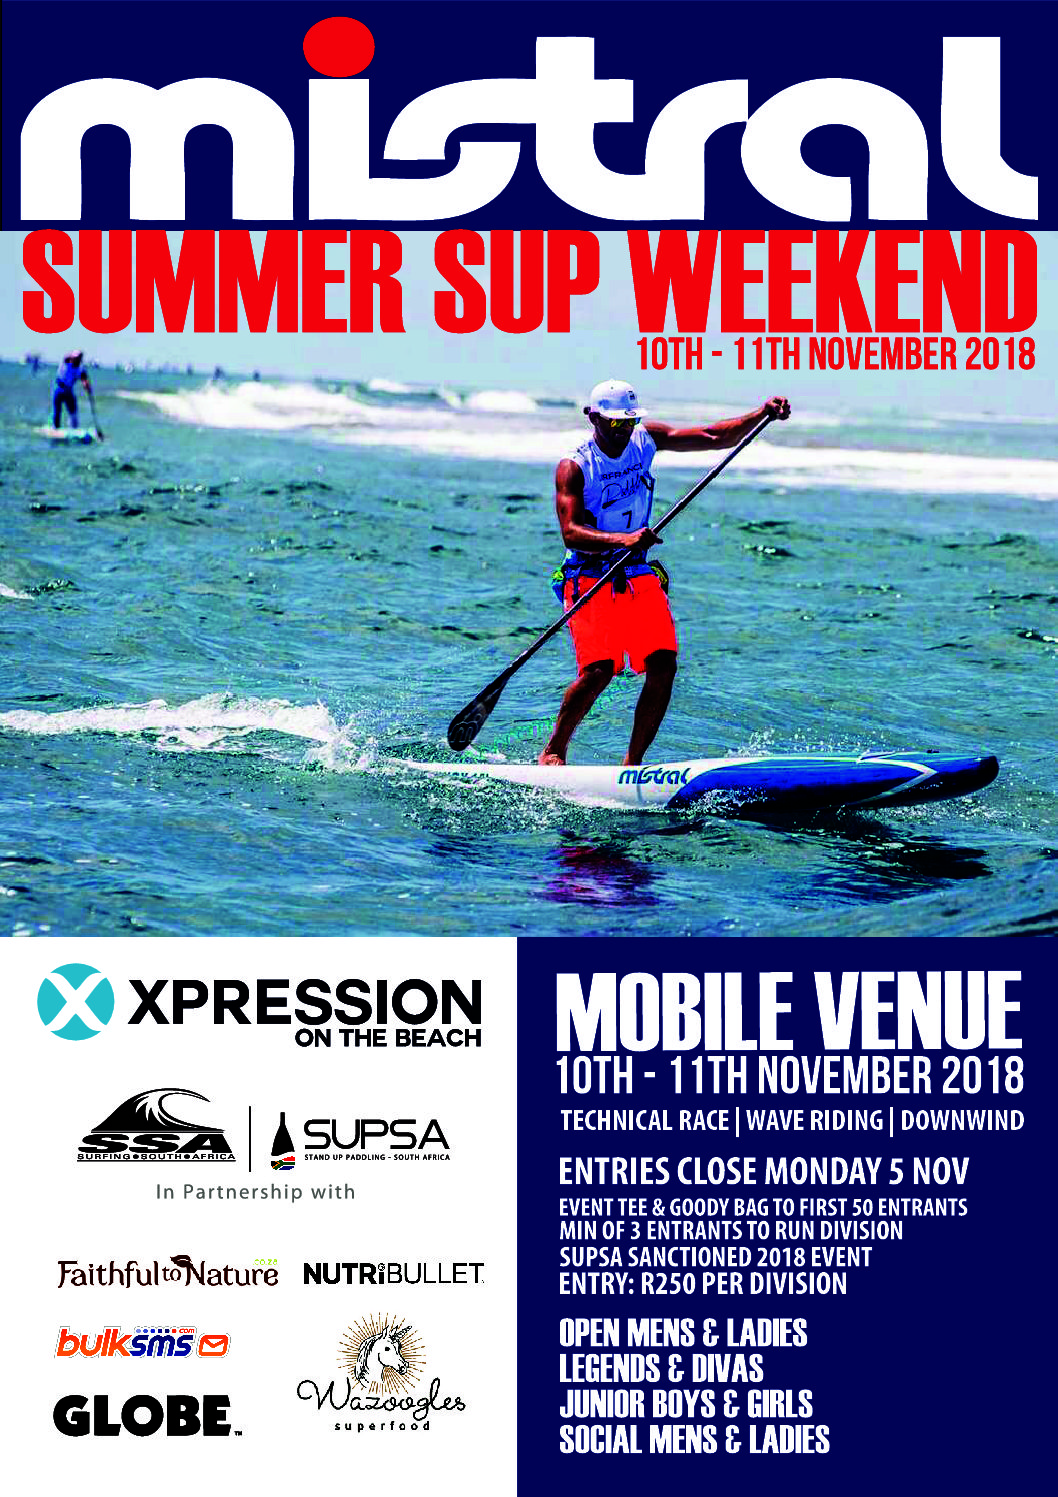 Mistral Summer SUP Weekend